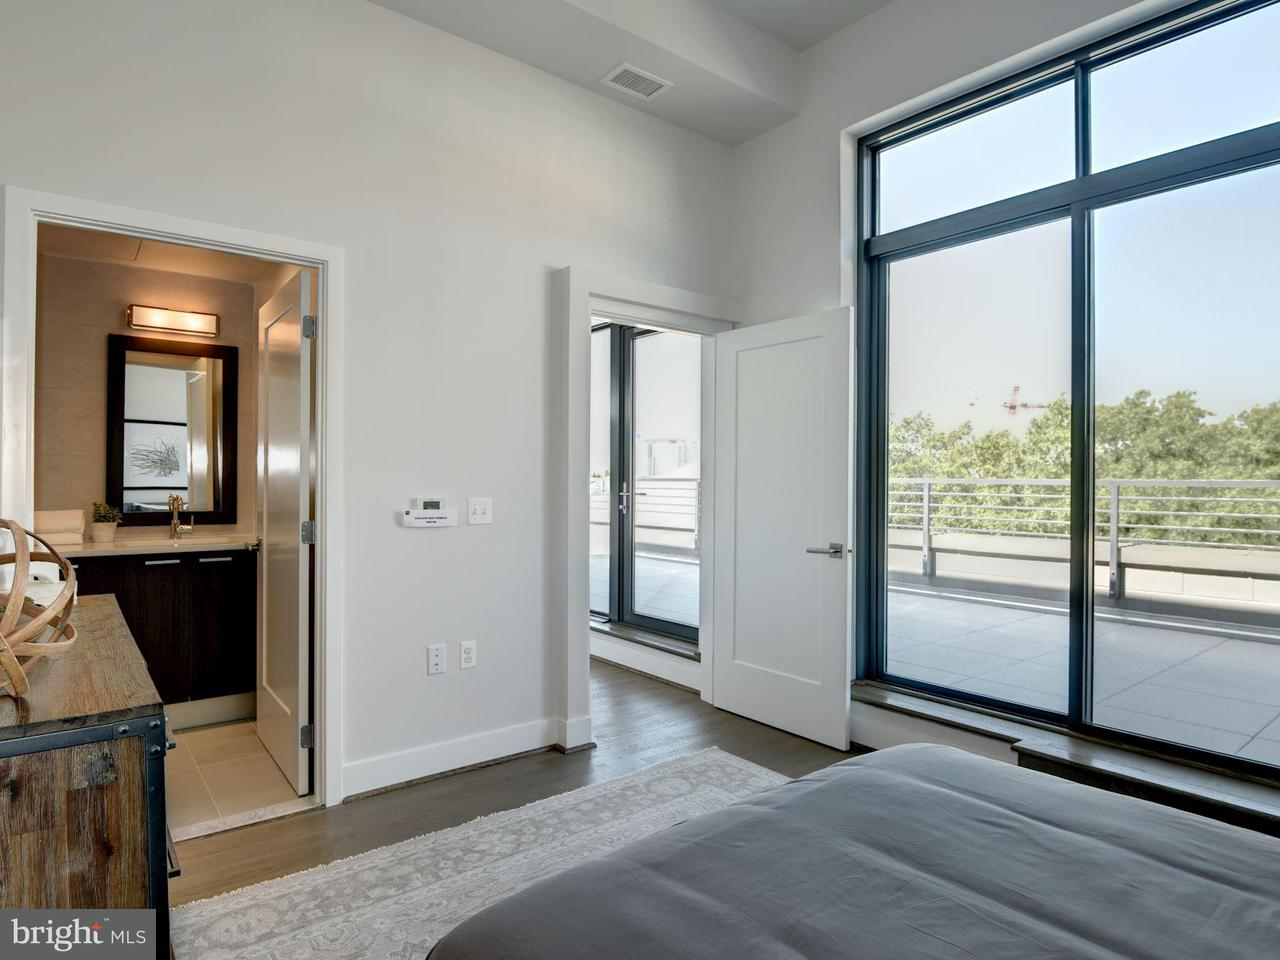 Additional photo for property listing at 525 WATER ST SW #431 525 WATER ST SW #431 Washington, コロンビア特別区 20024 アメリカ合衆国